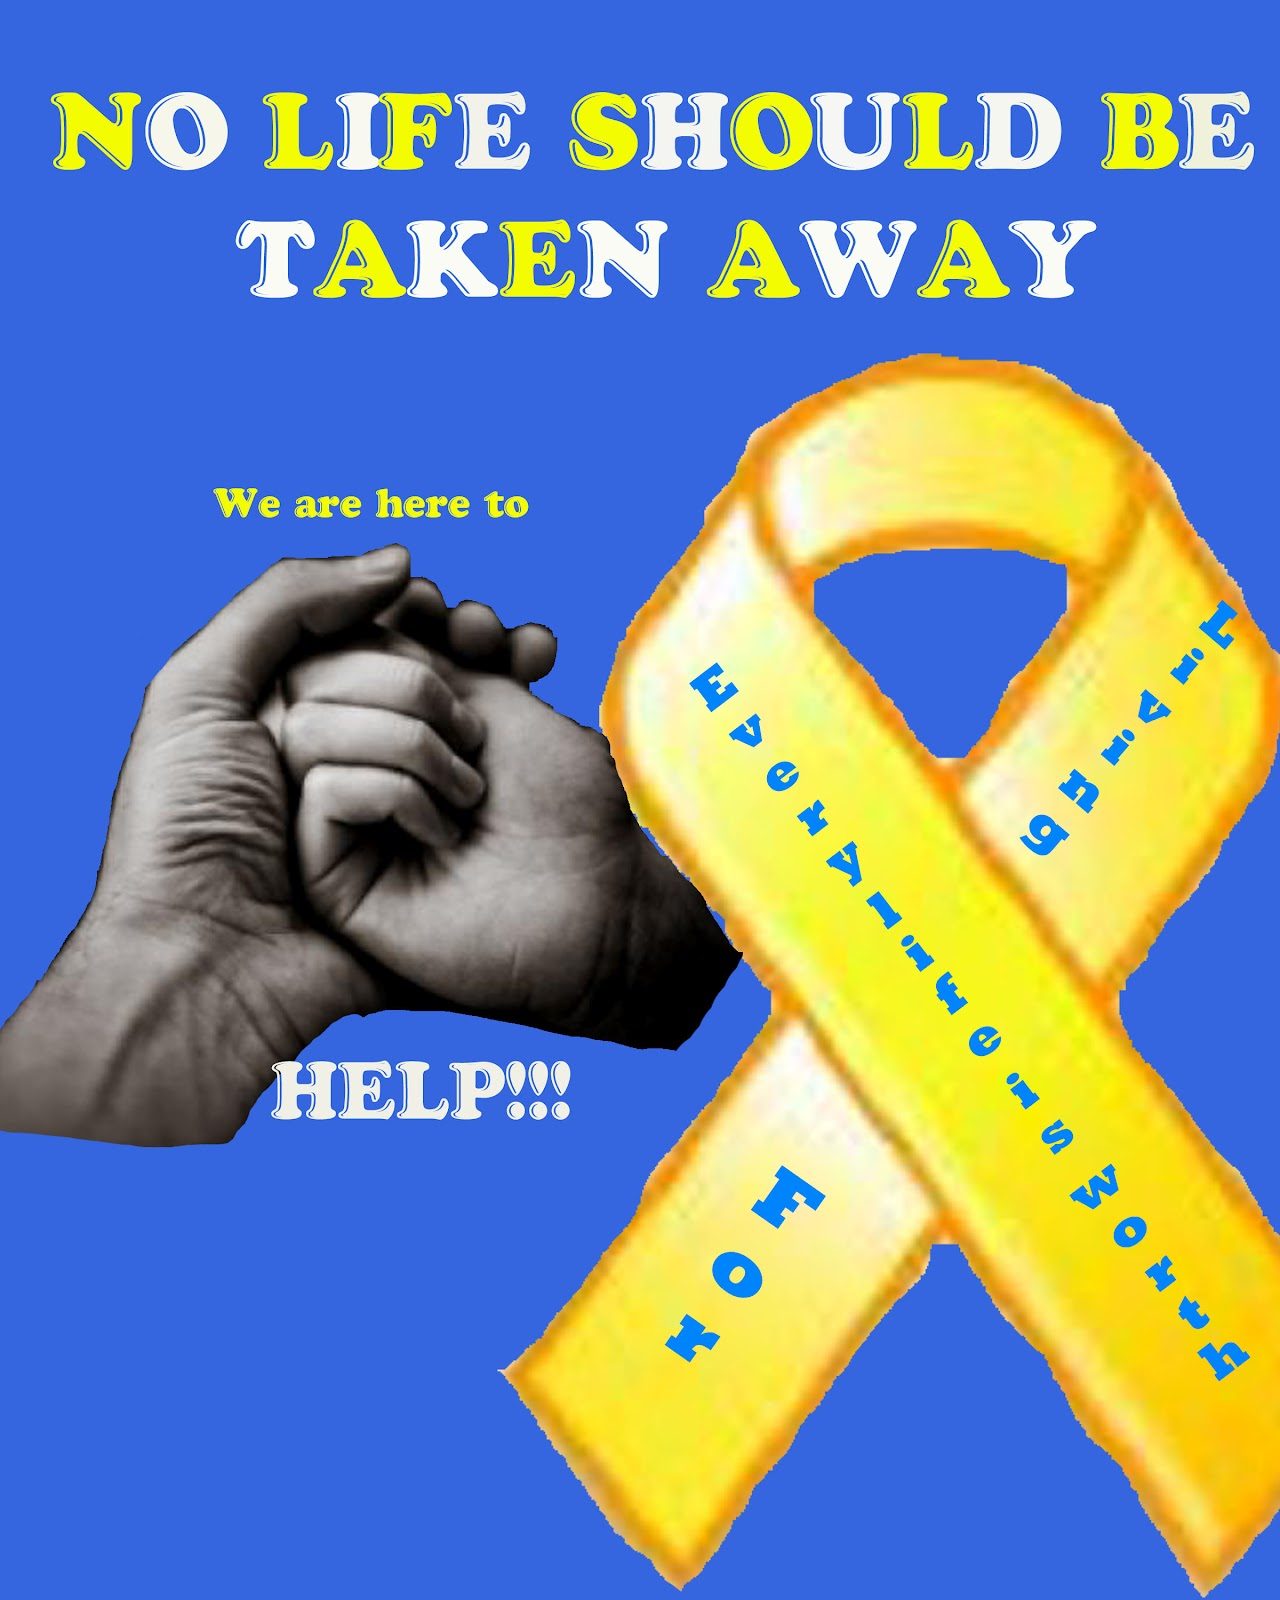 Maria Aguilera: Suicide Prevention Poster